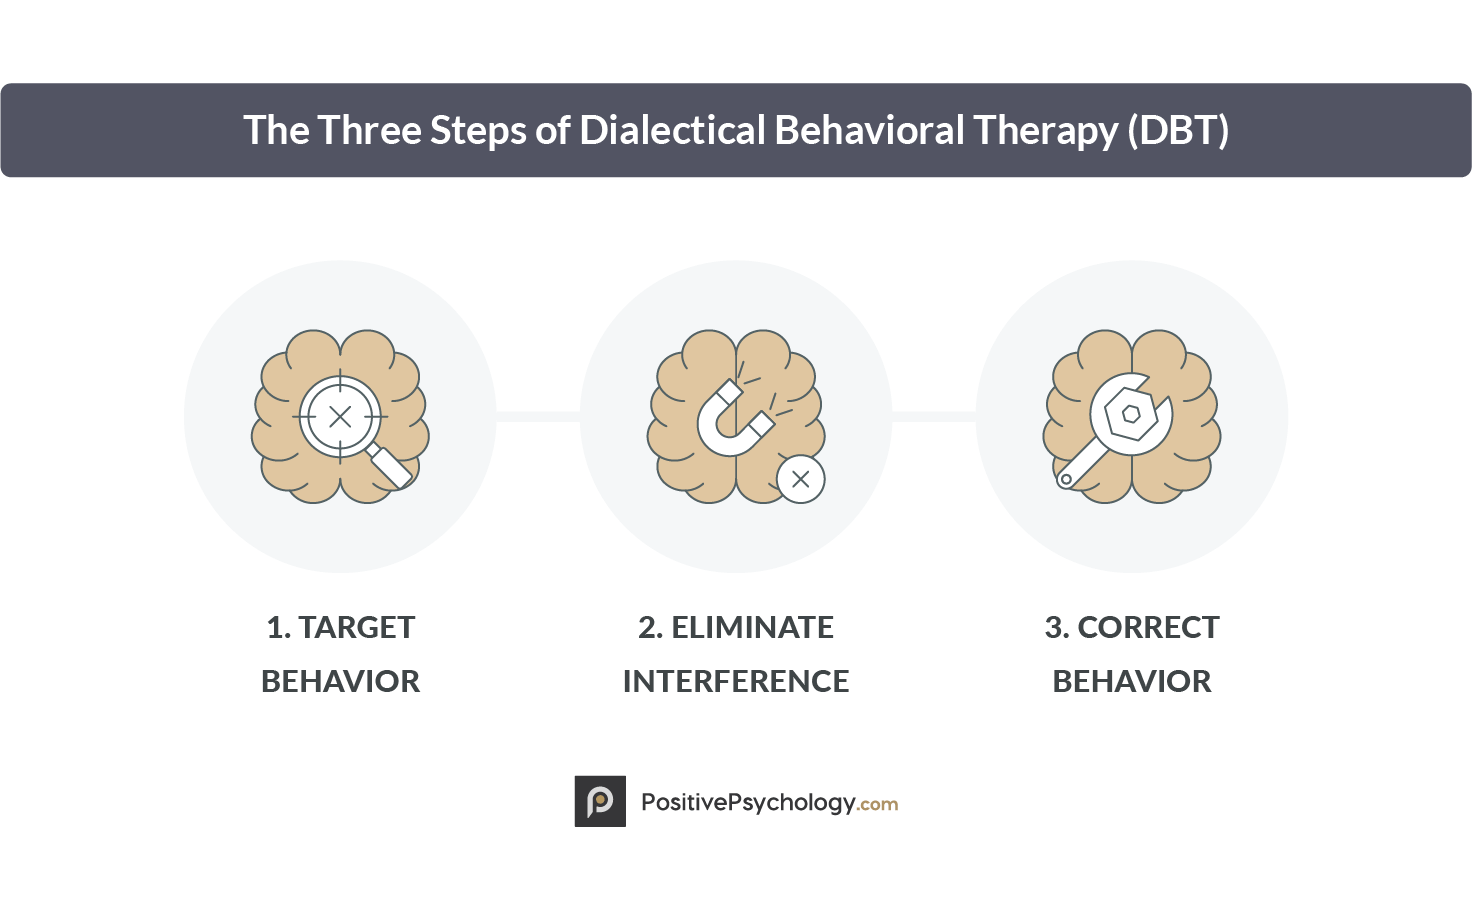 The Three Steps of Dialectical Behavioral Therapy (DBT)